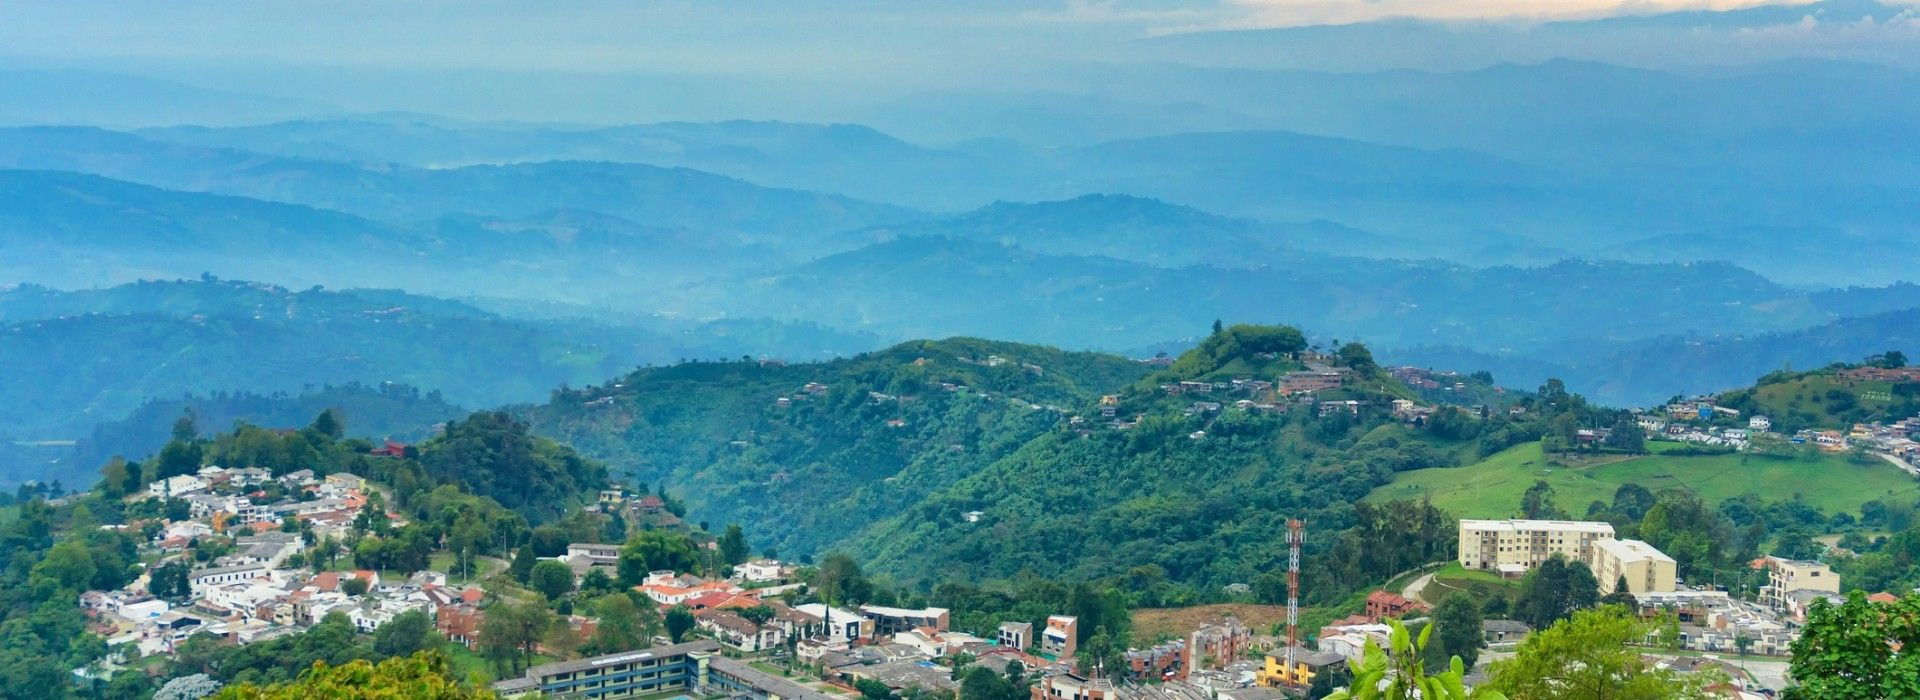 Manizales tours will introduce you to a world of coffee farming